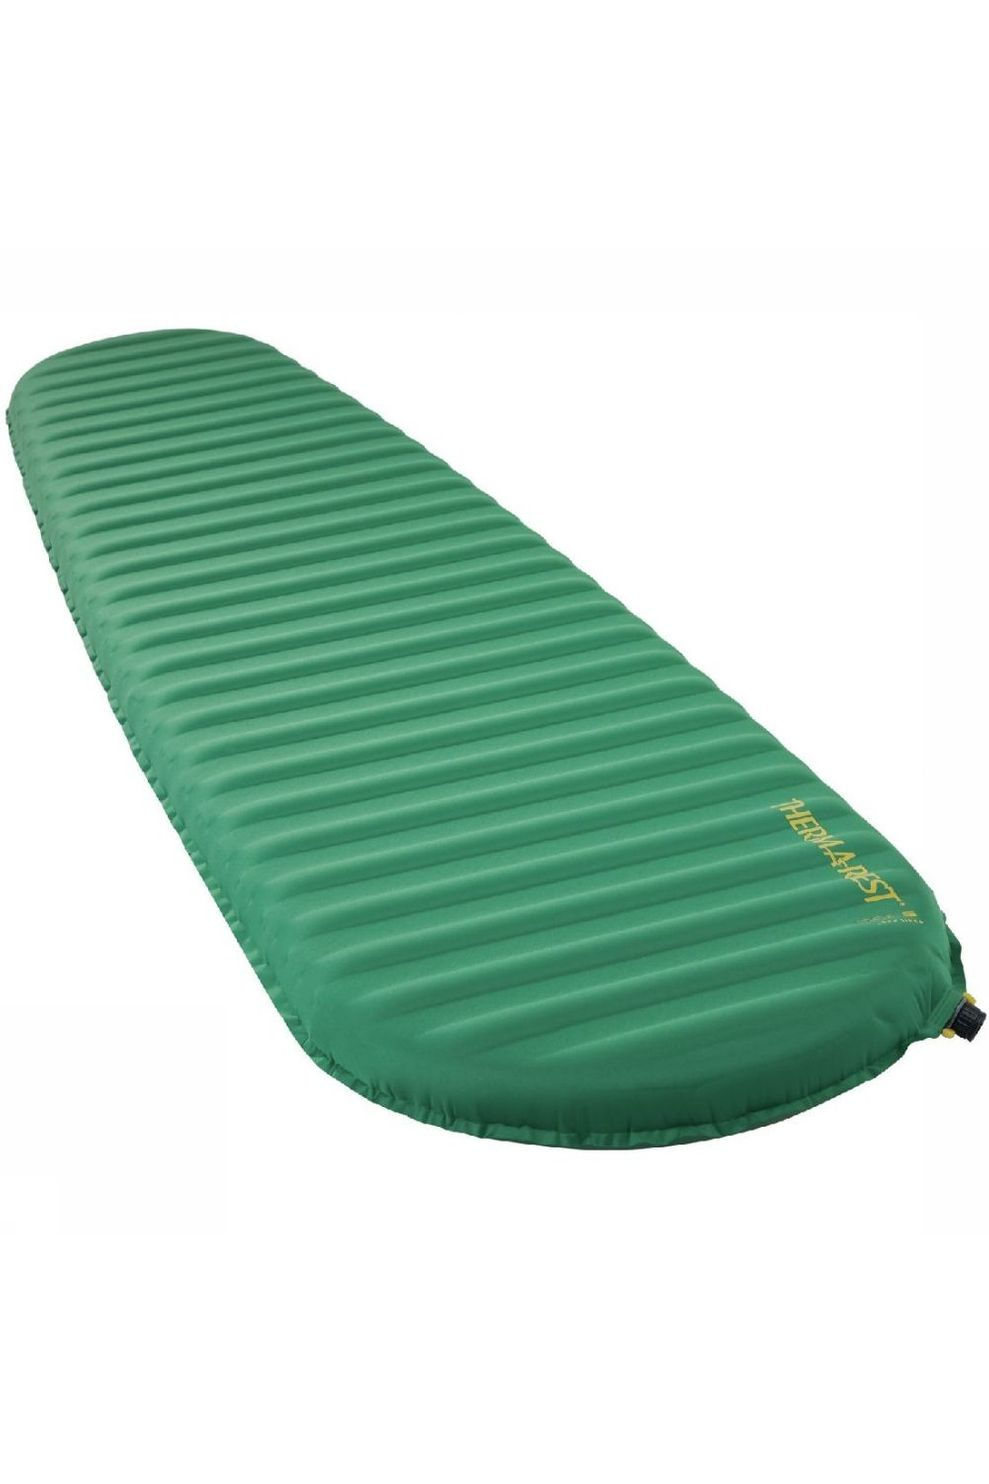 Therm-a-Rest Slaapmat Trail Pro R - Groen